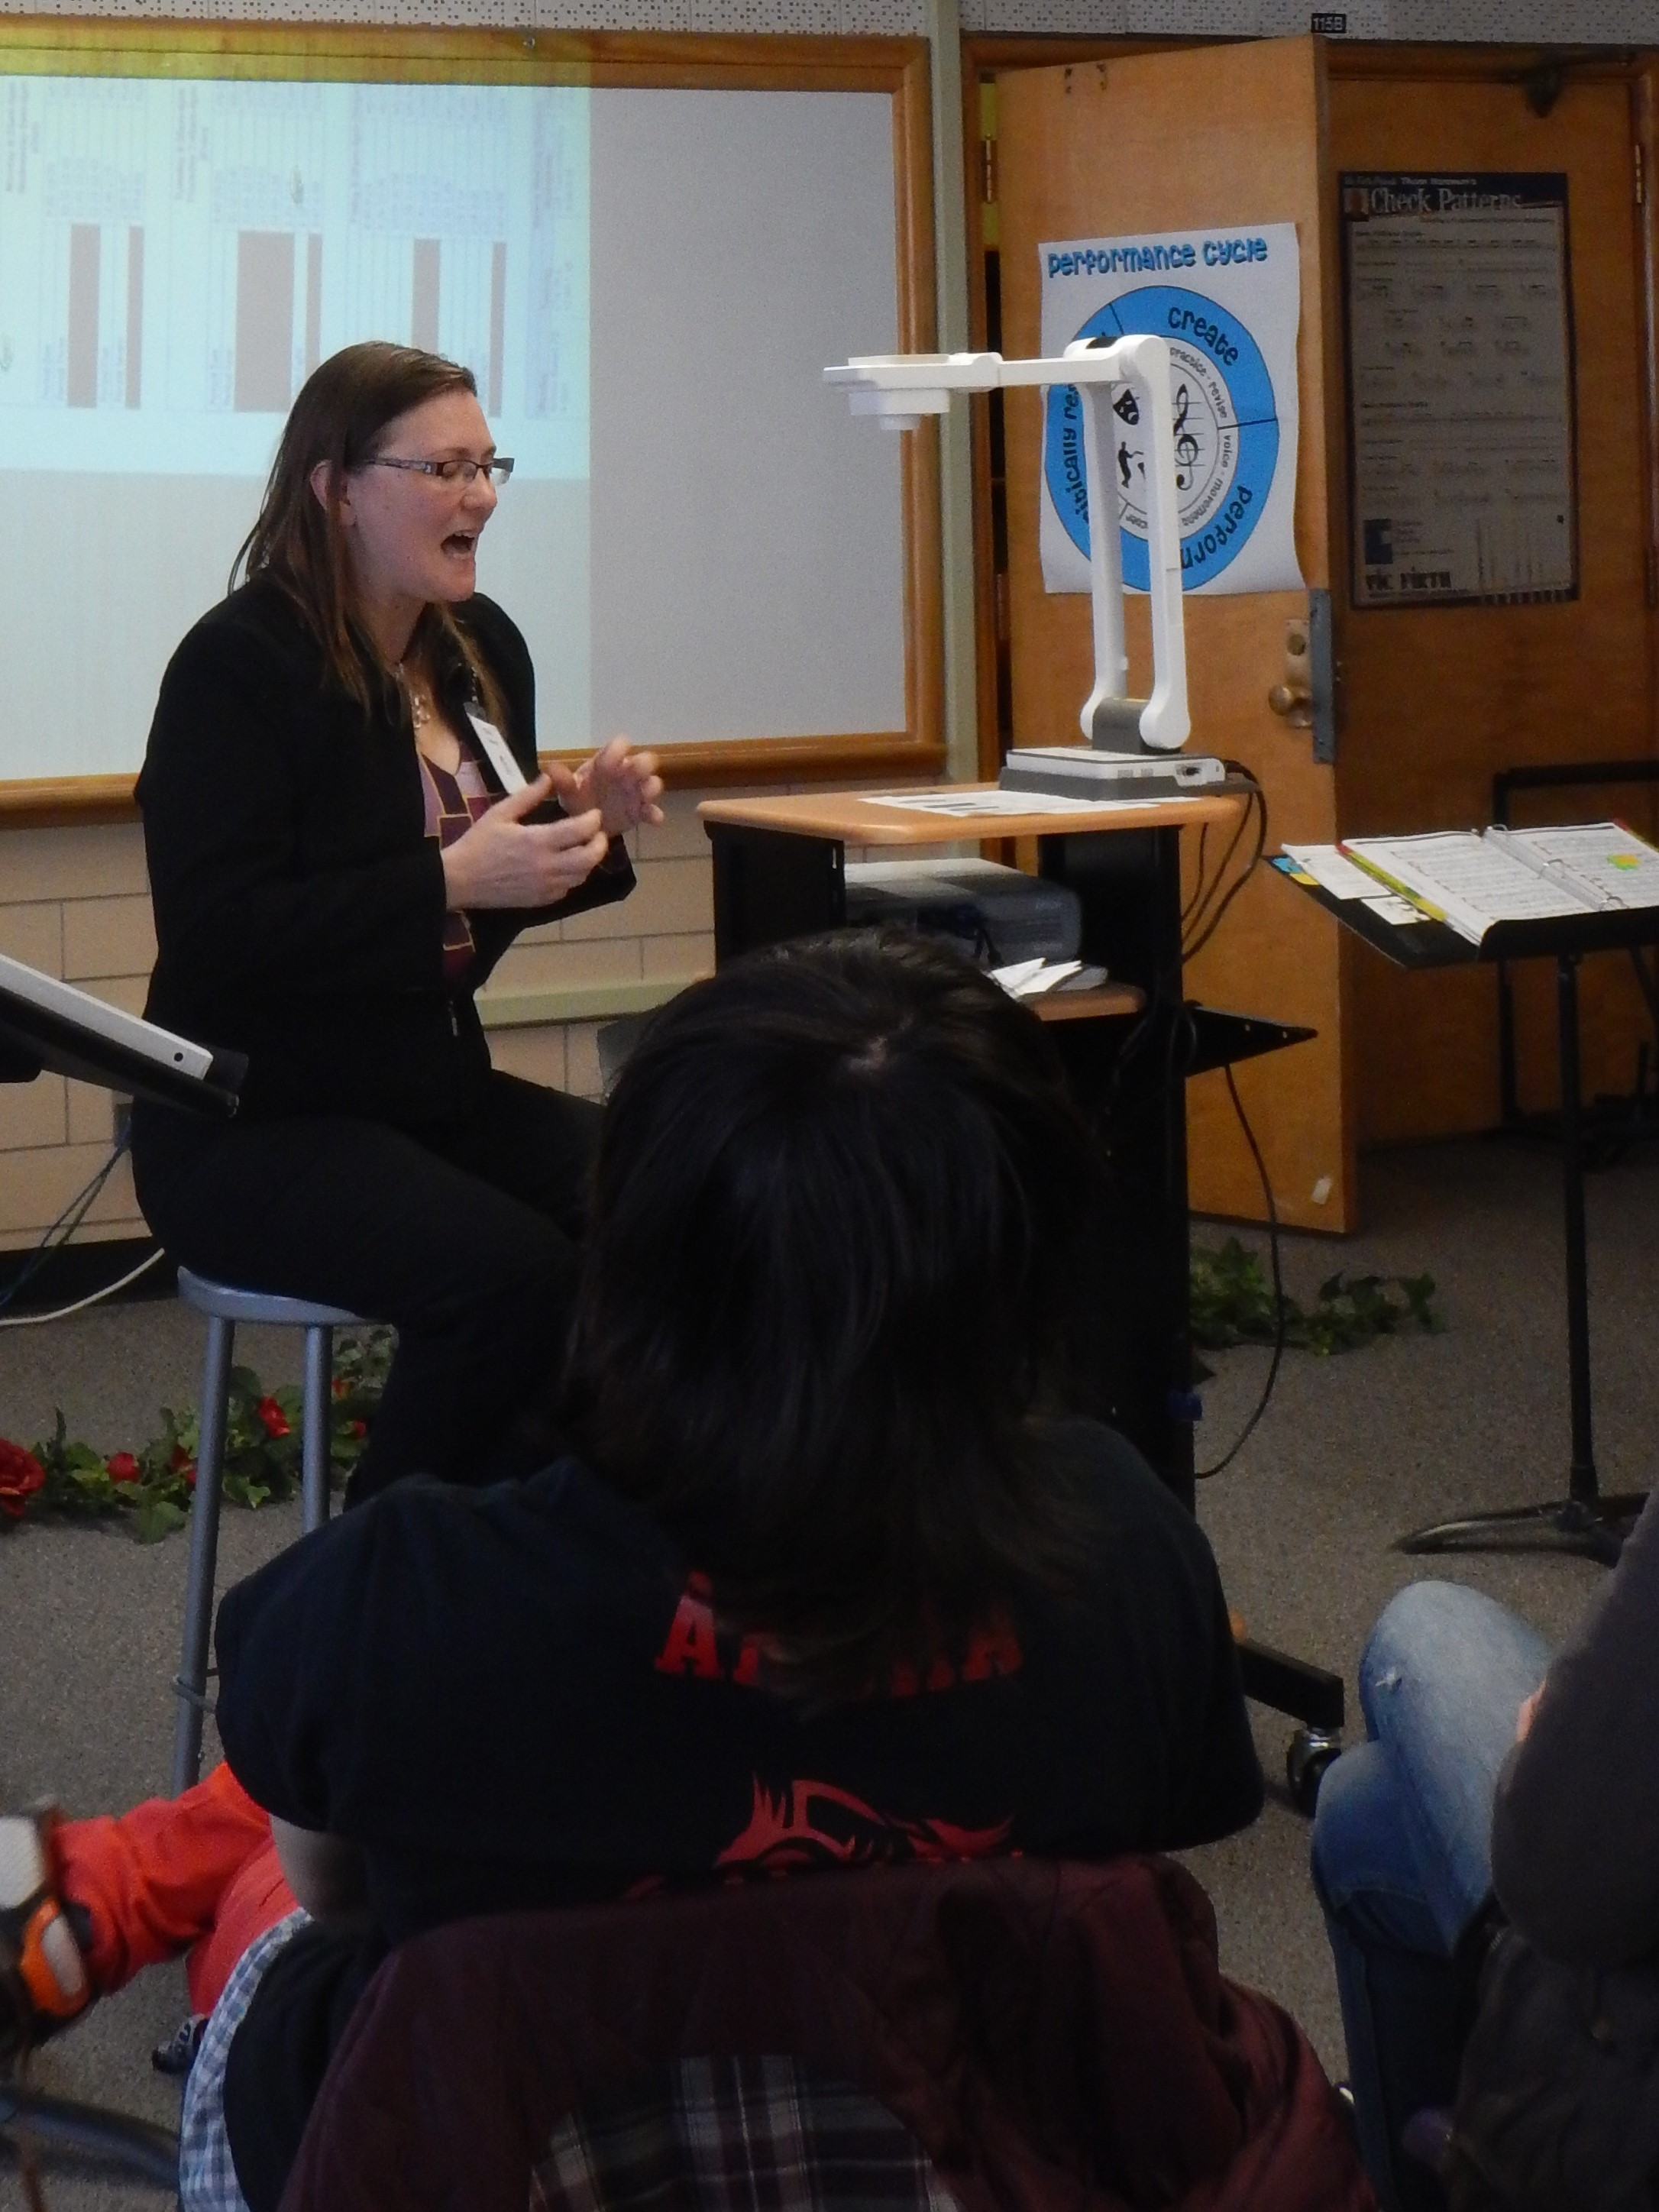 Stage Manager Erin Joy Swank sits near an overhead projector in front of a group of students